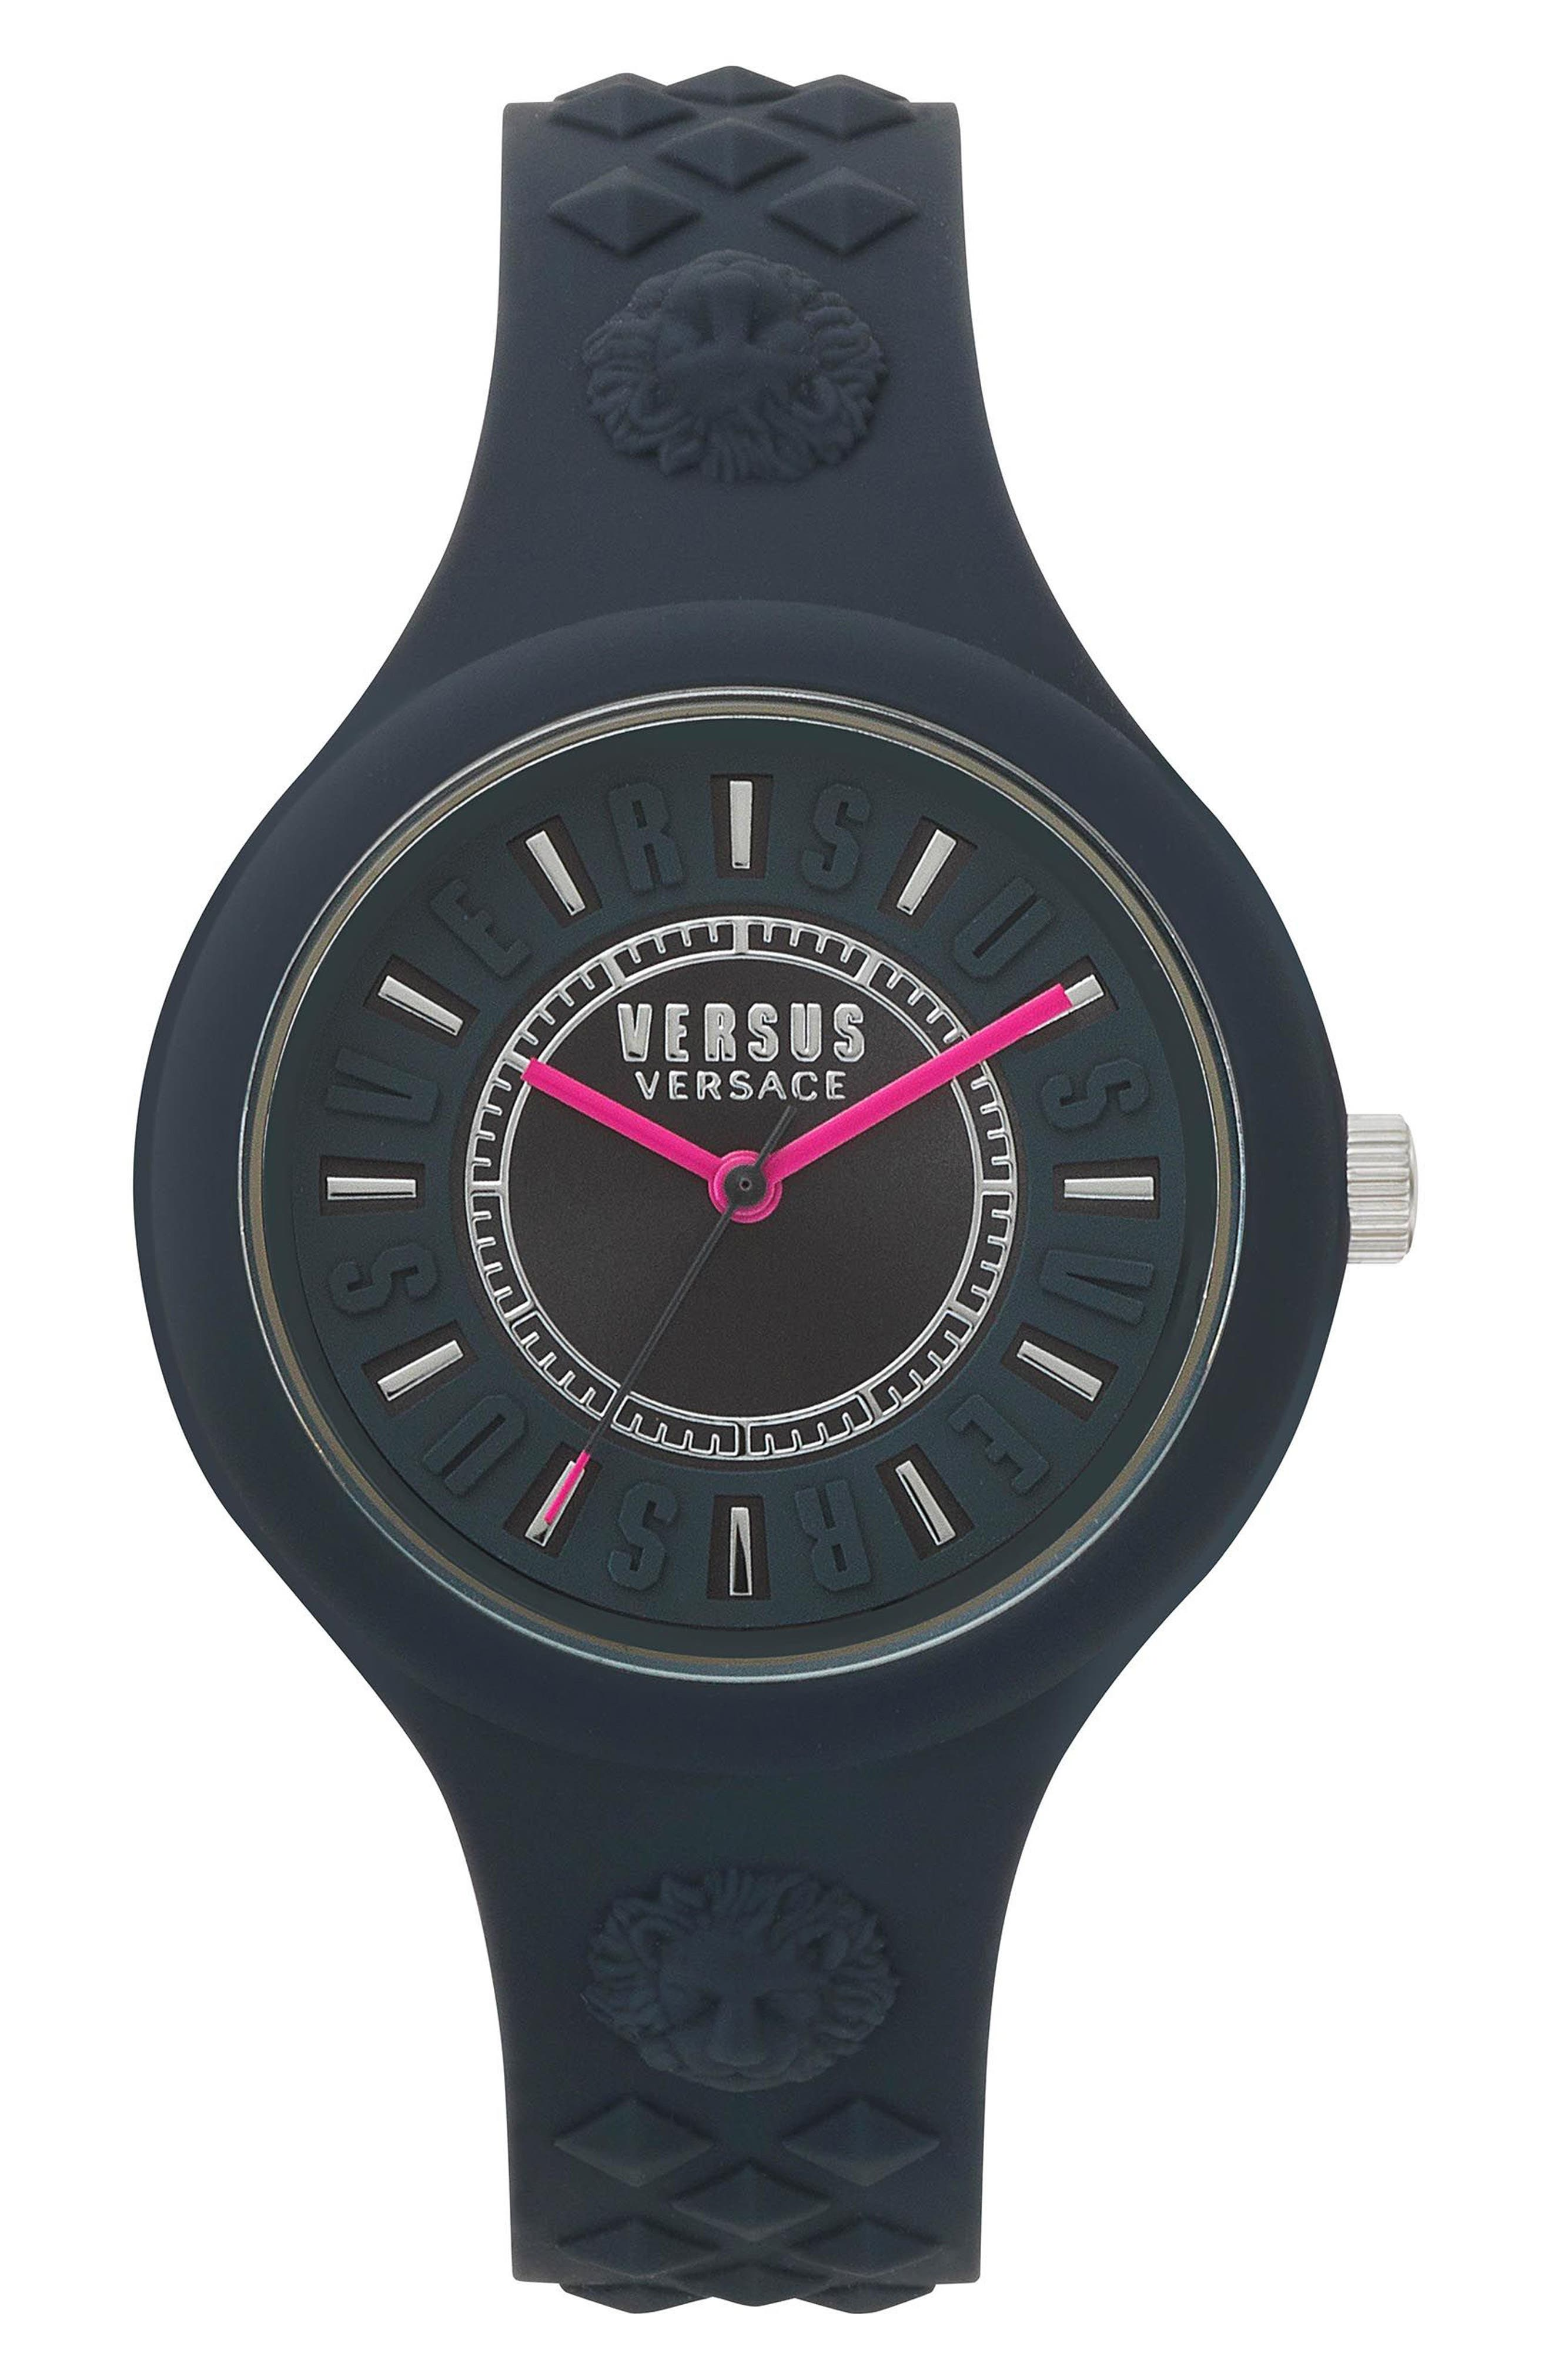 VERSUS VERSACE, Fire Island Silicone Strap Watch, 39mm, Main thumbnail 1, color, GREY/ FUCHSIA